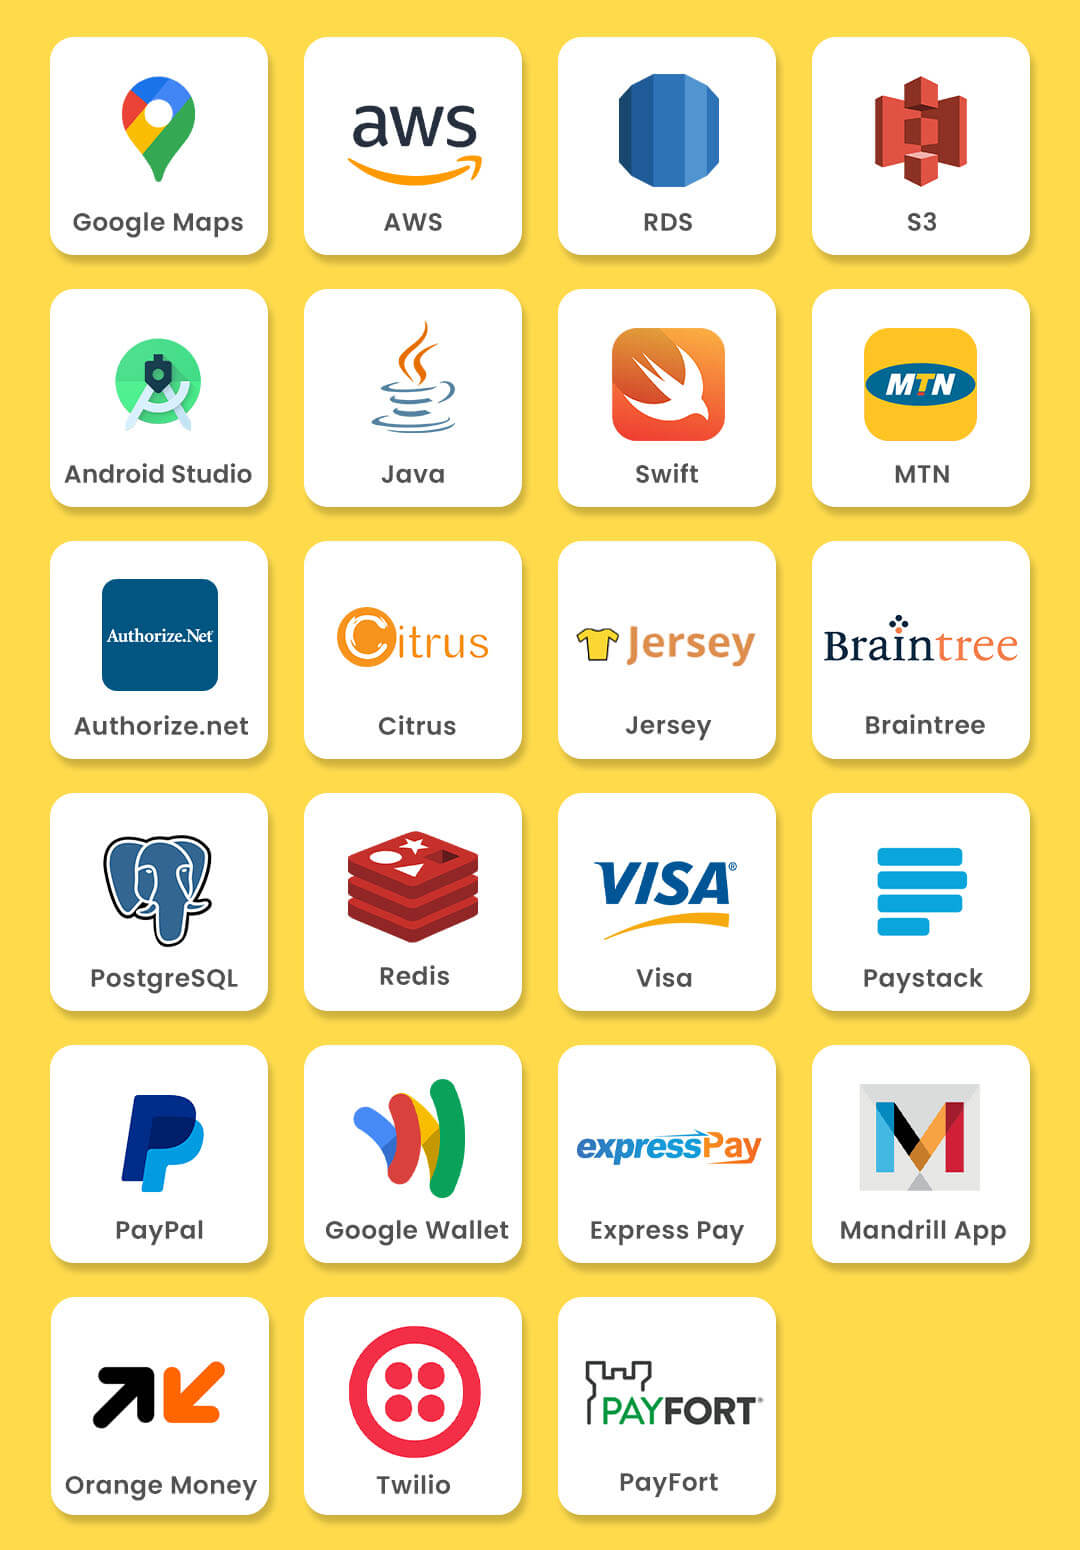 Technology Stack Used in Our Ridesharing App